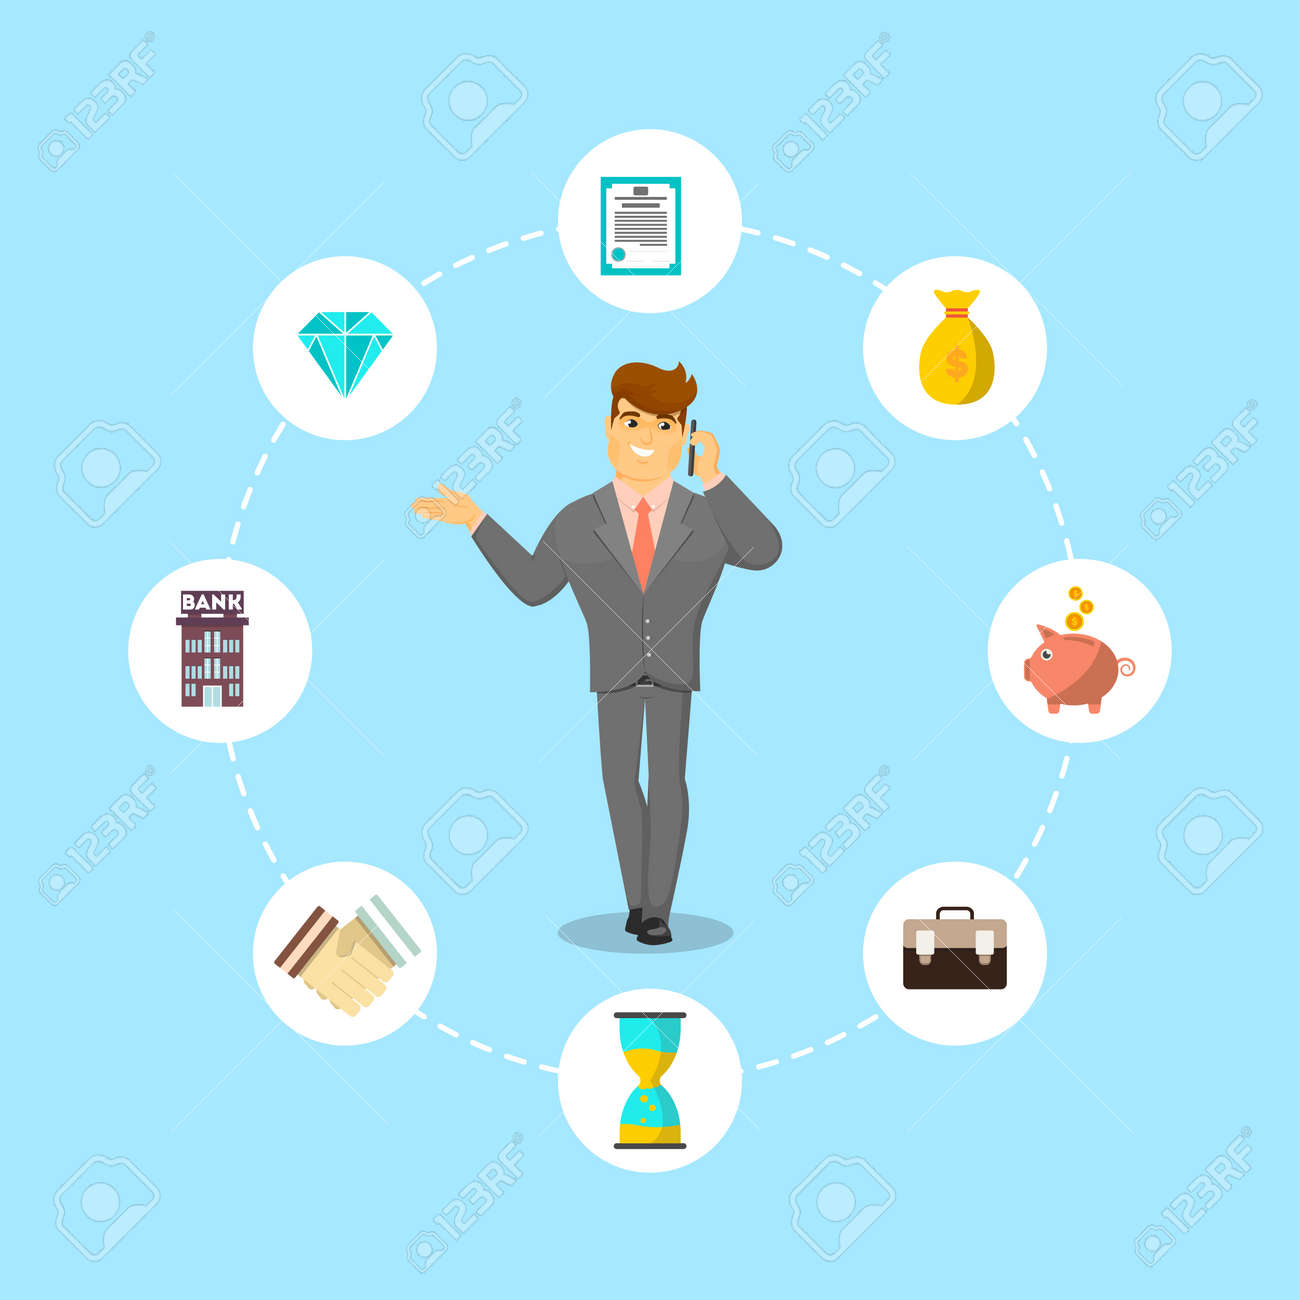 Successful businessman speaking on phone. Standing young man in business suit and tie talking about money vector illustration. Smart investment opportunity in securities, real estate or bank deposit. - 81723328